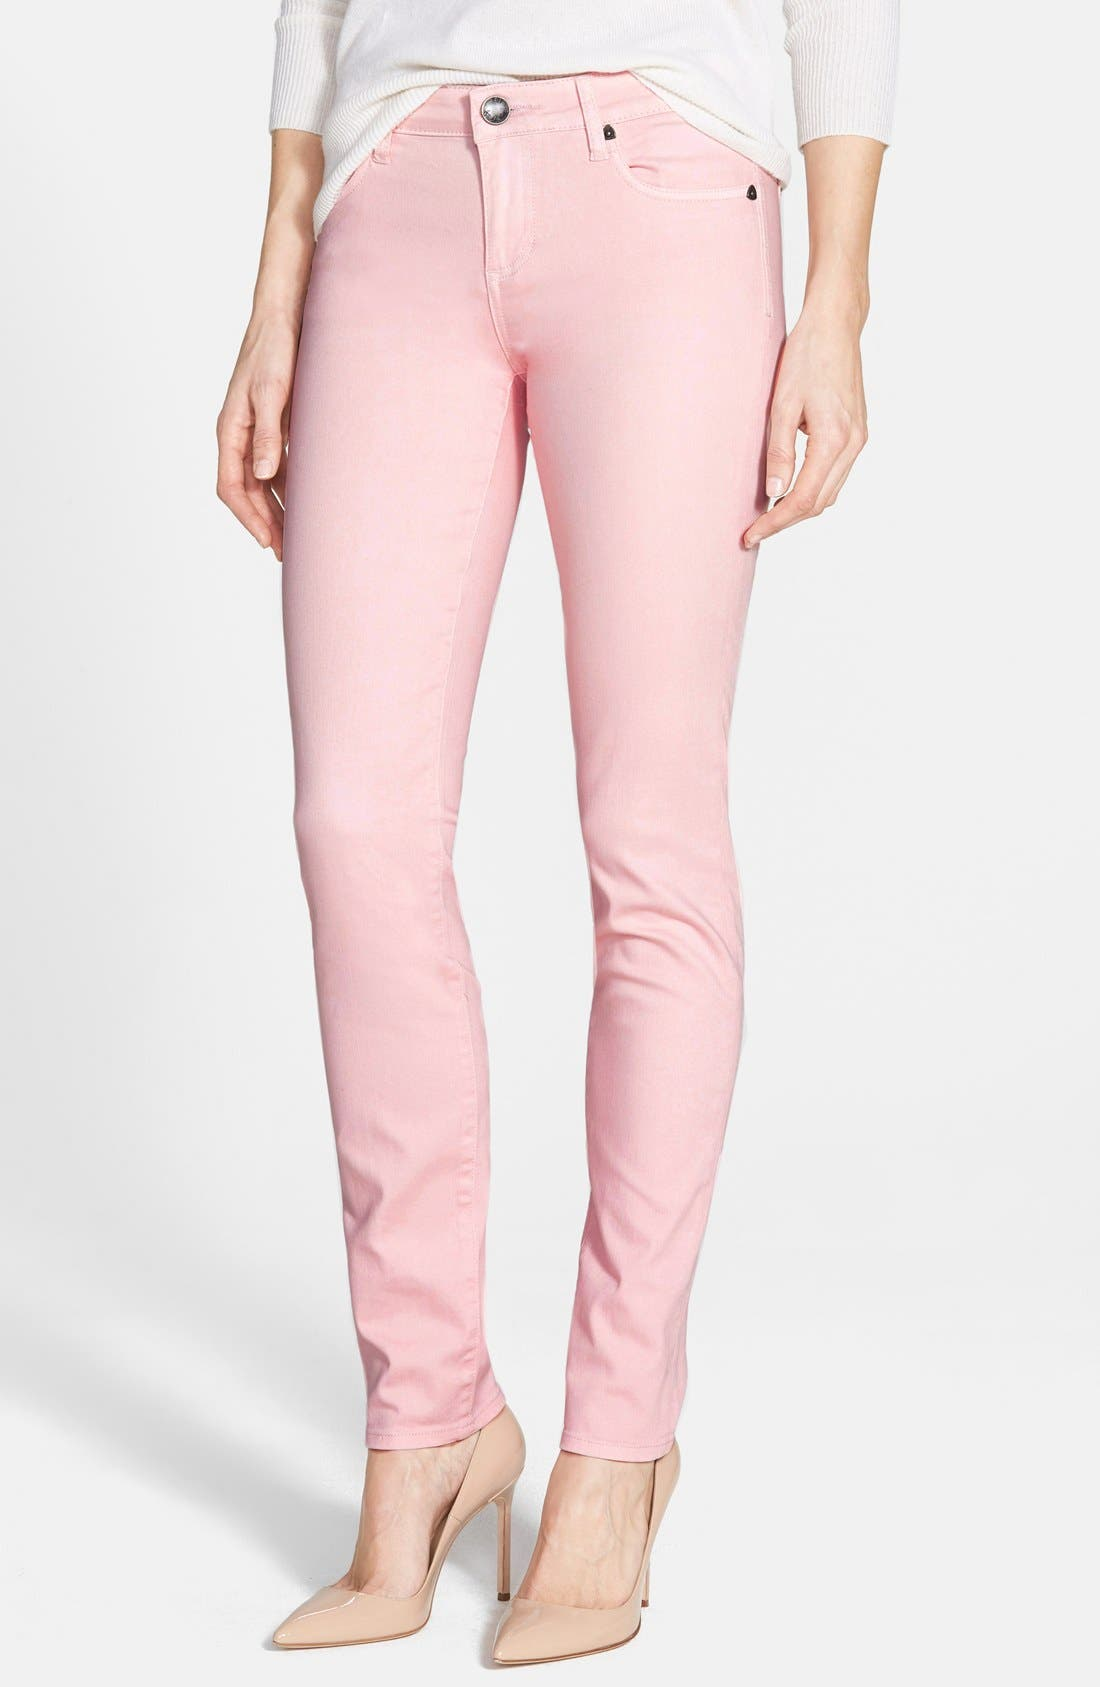 Main Image - KUT from the Kloth 'Diana' Colored Stretch Skinny Jeans